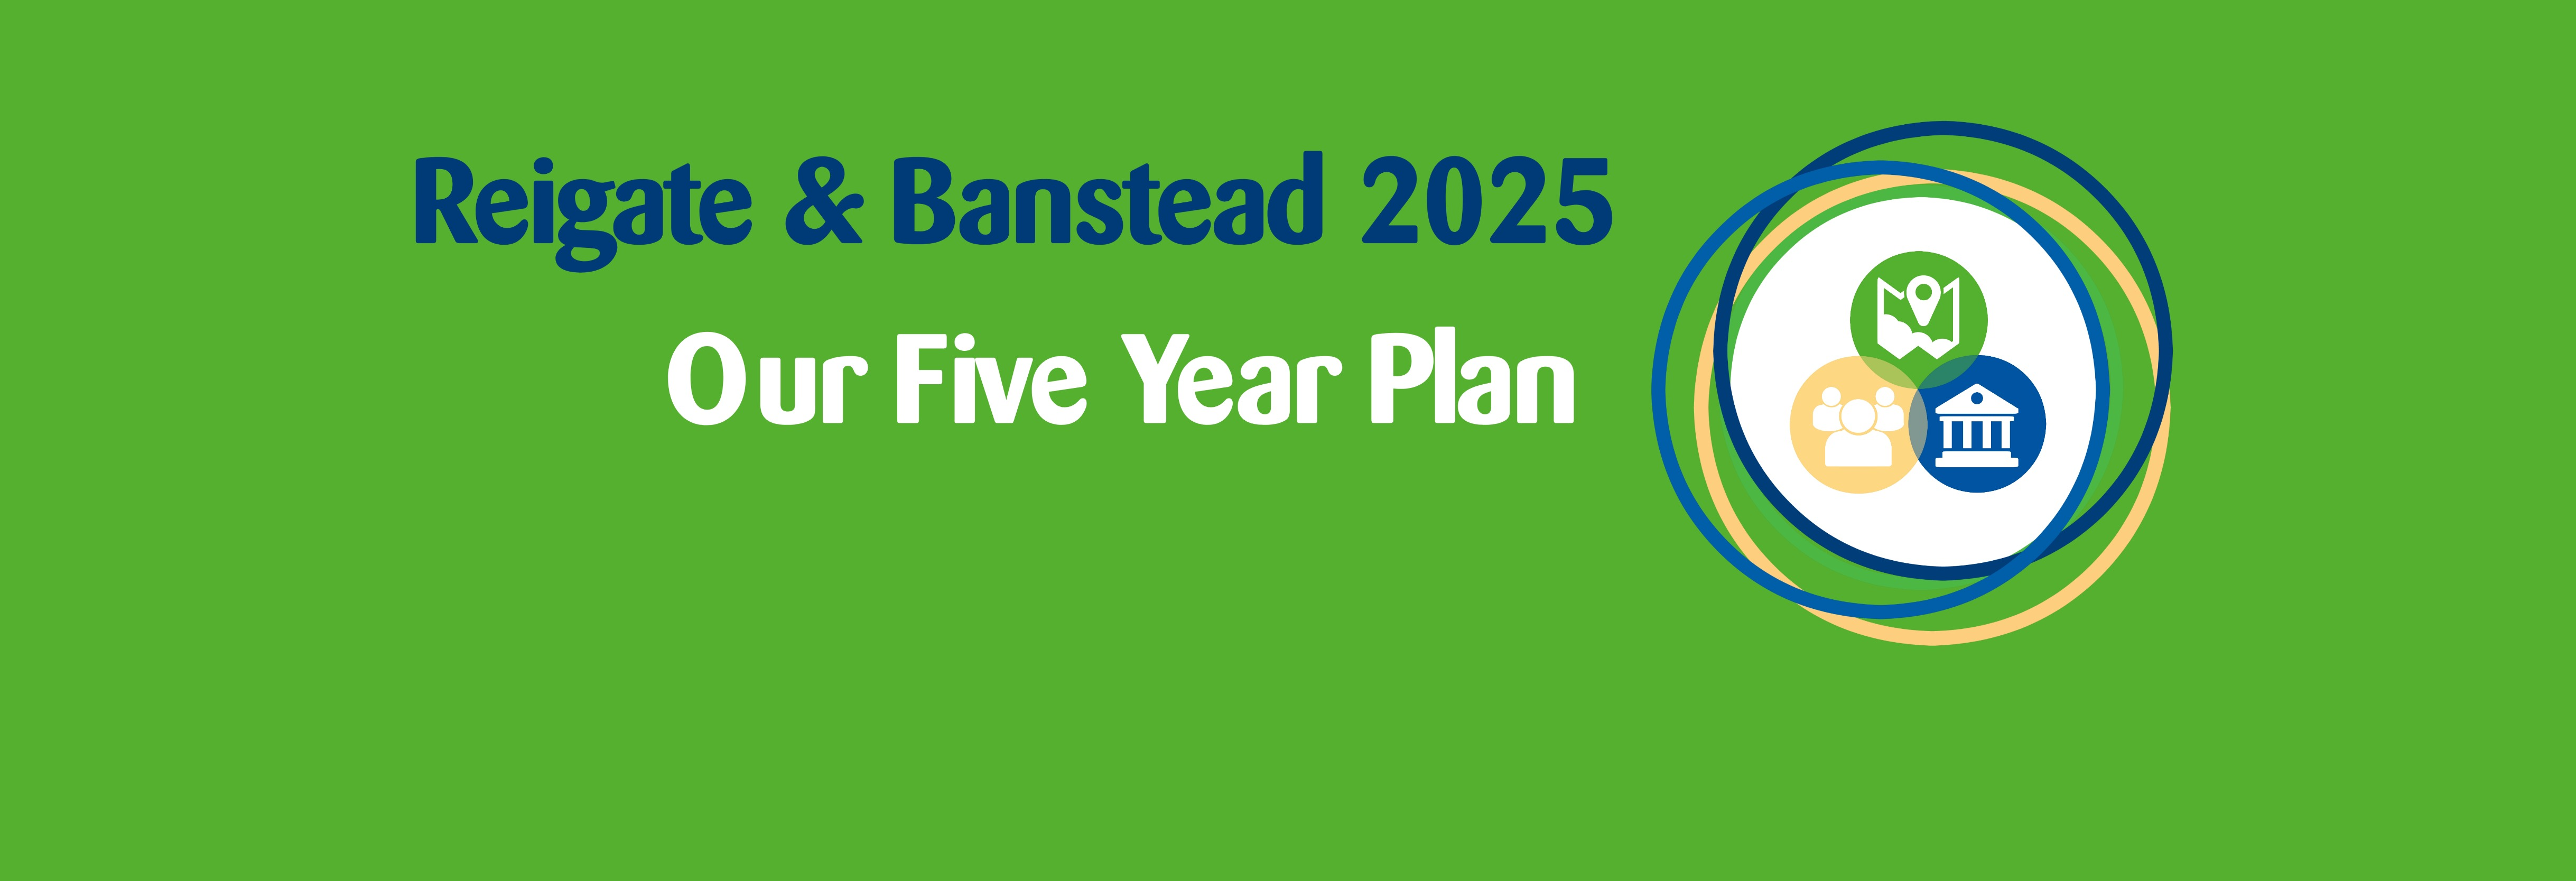 Learn what we plan to deliver for you during 2020-25